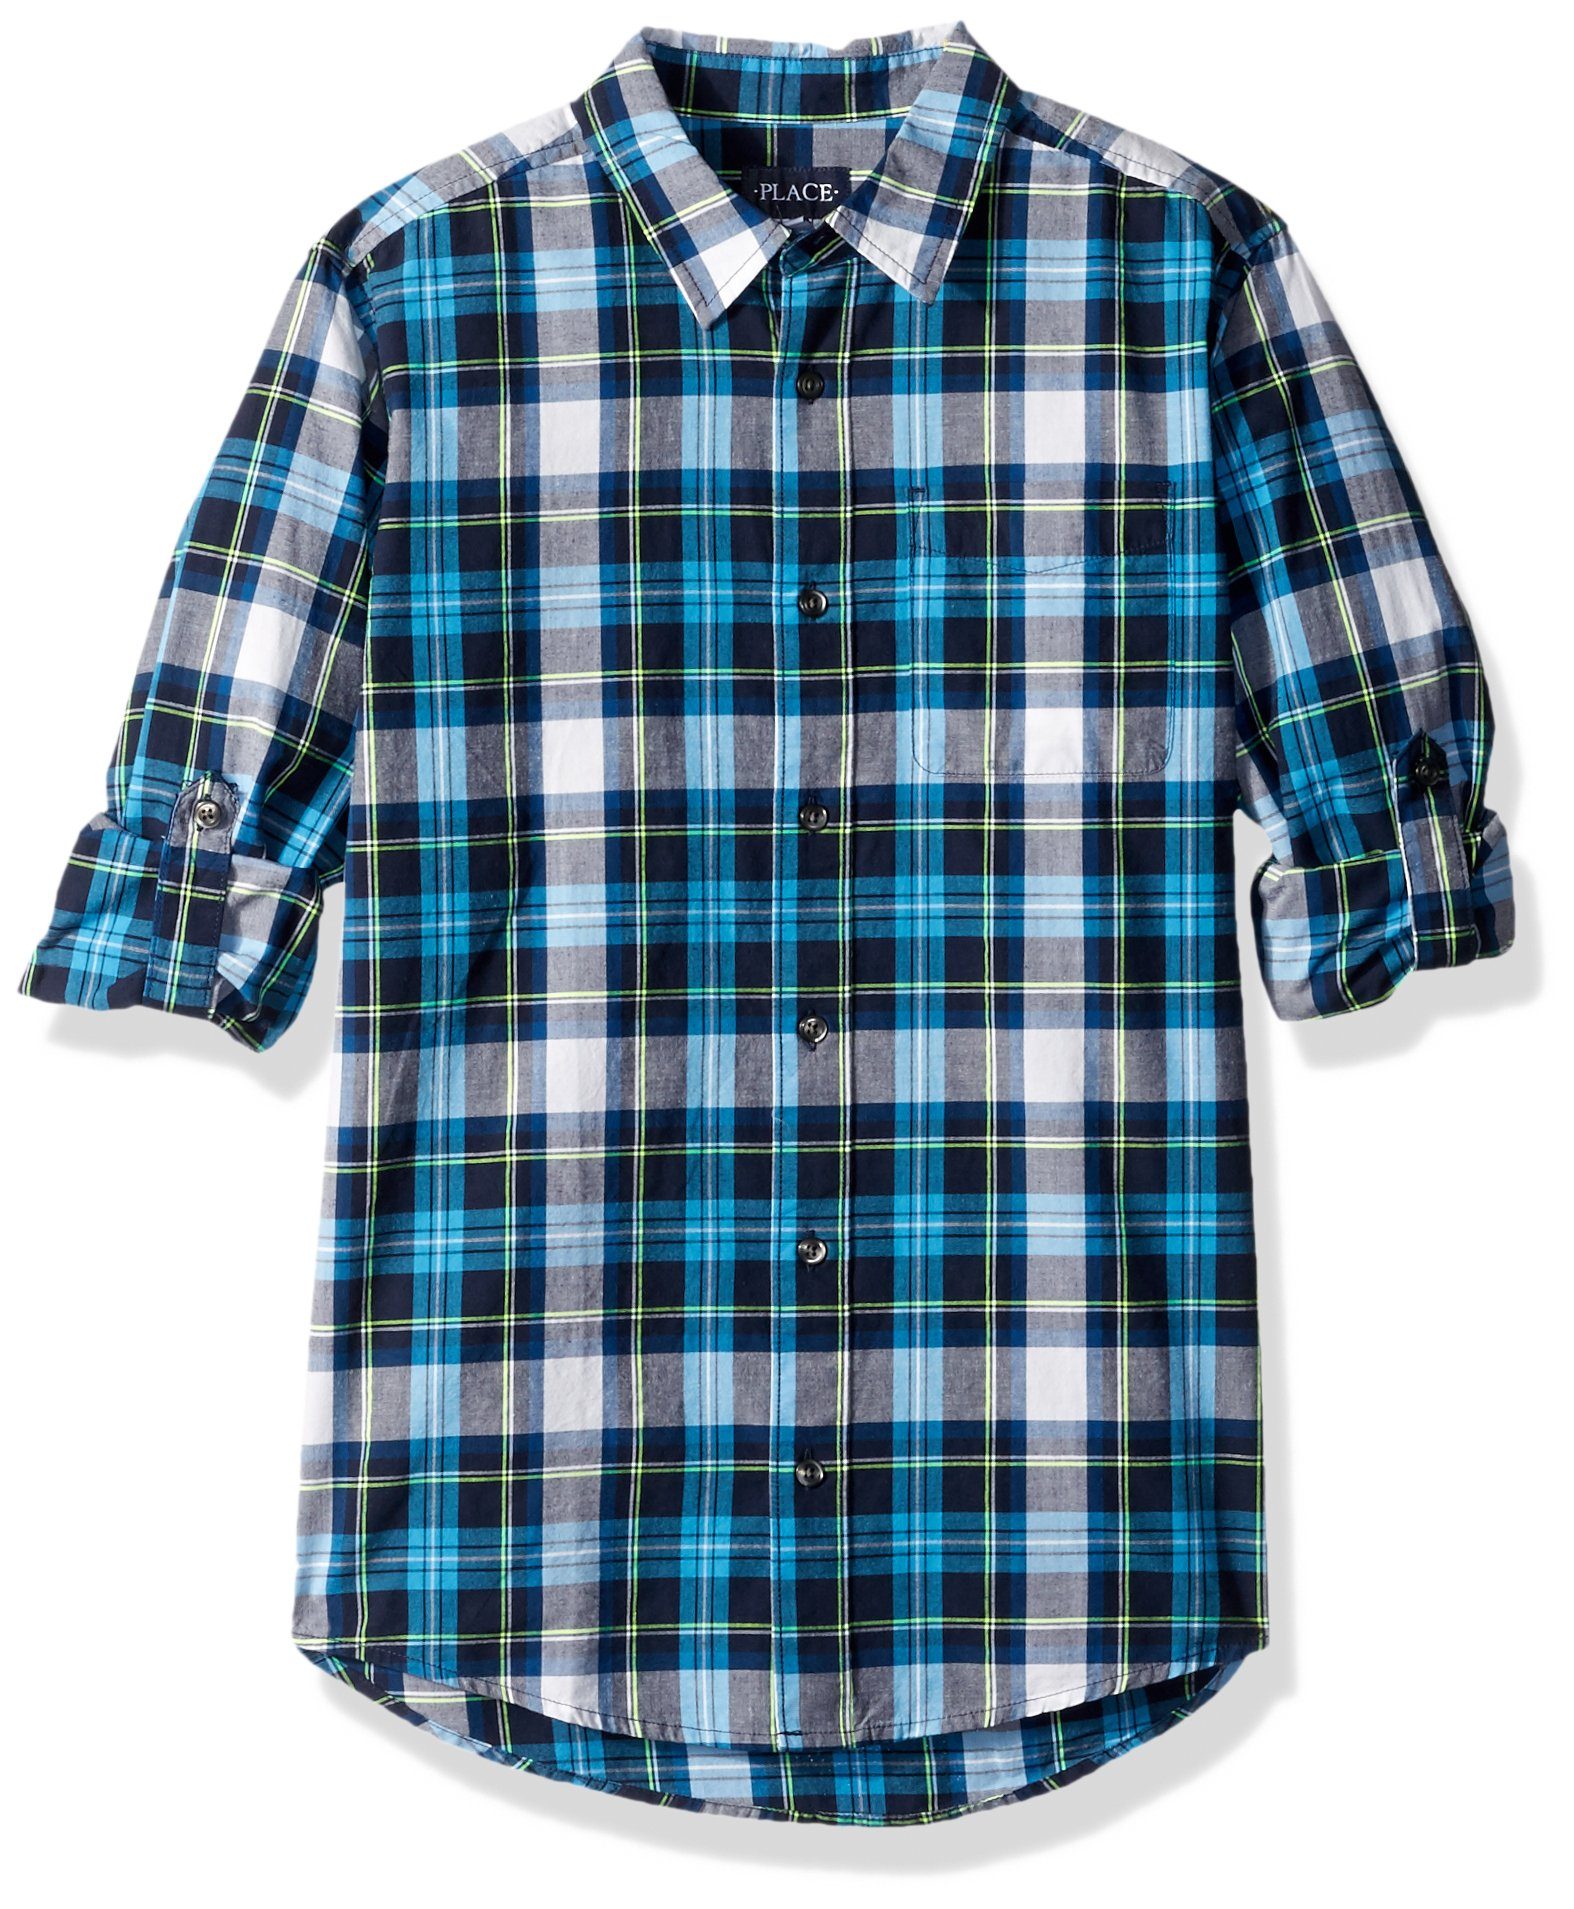 The Children's Place Big Boys' Plaid Double-Roll Shirt, Sojourn Blue, M (7/8)